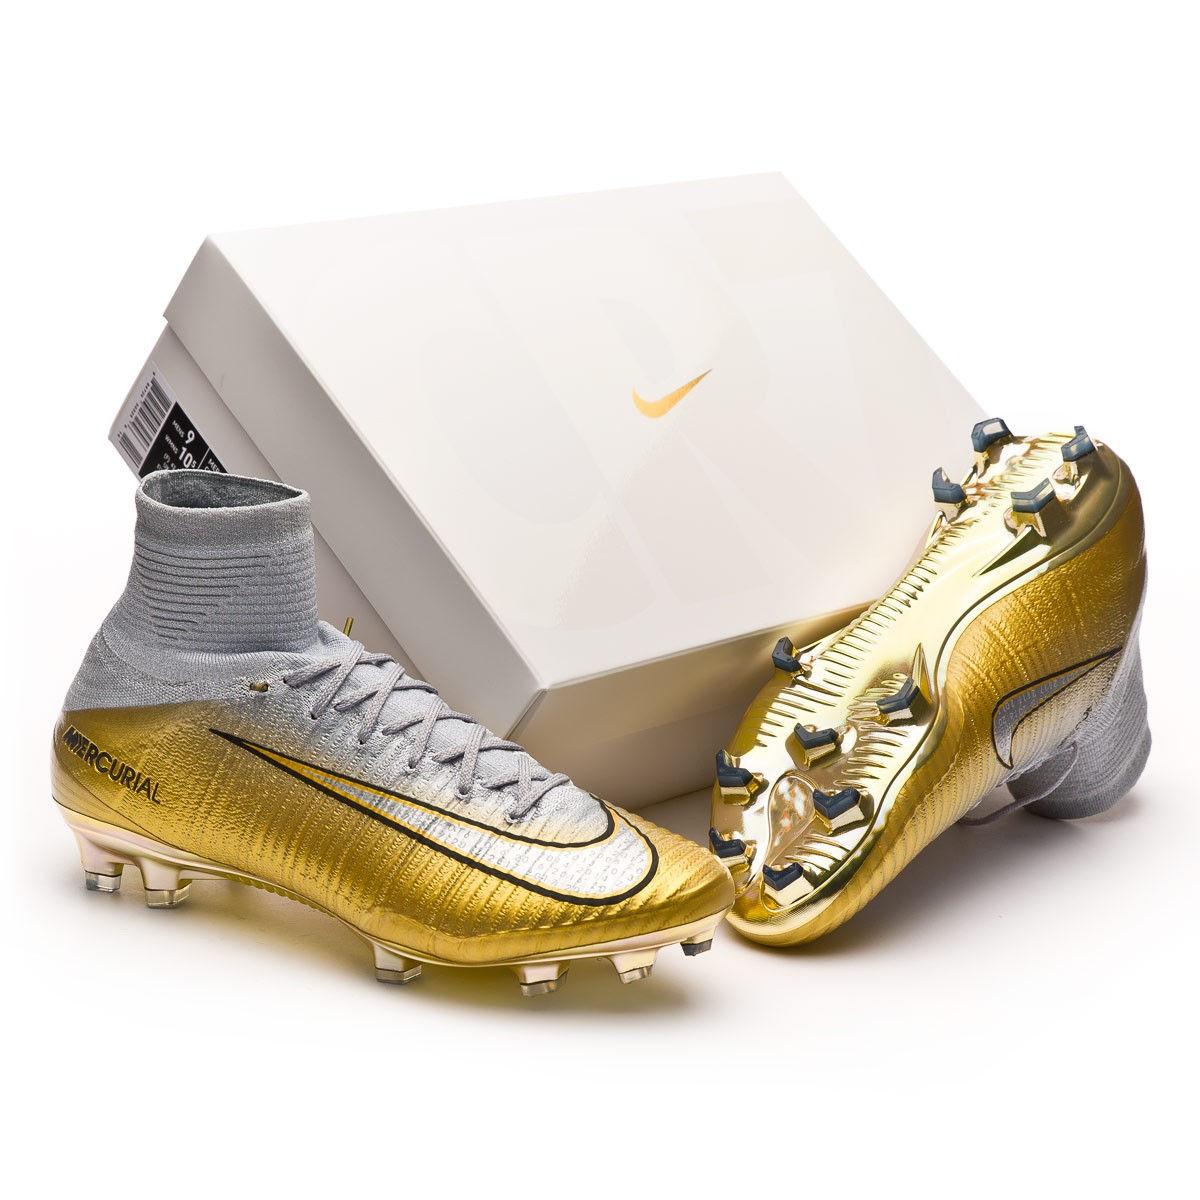 30843adb0b9 Chaussure de foot Nike Mercurial Superfly V CR7 Quinto Triunfo FG Pure  platinum-Metallic silver-Wolf grey - Boutique de football Fútbol Emotion